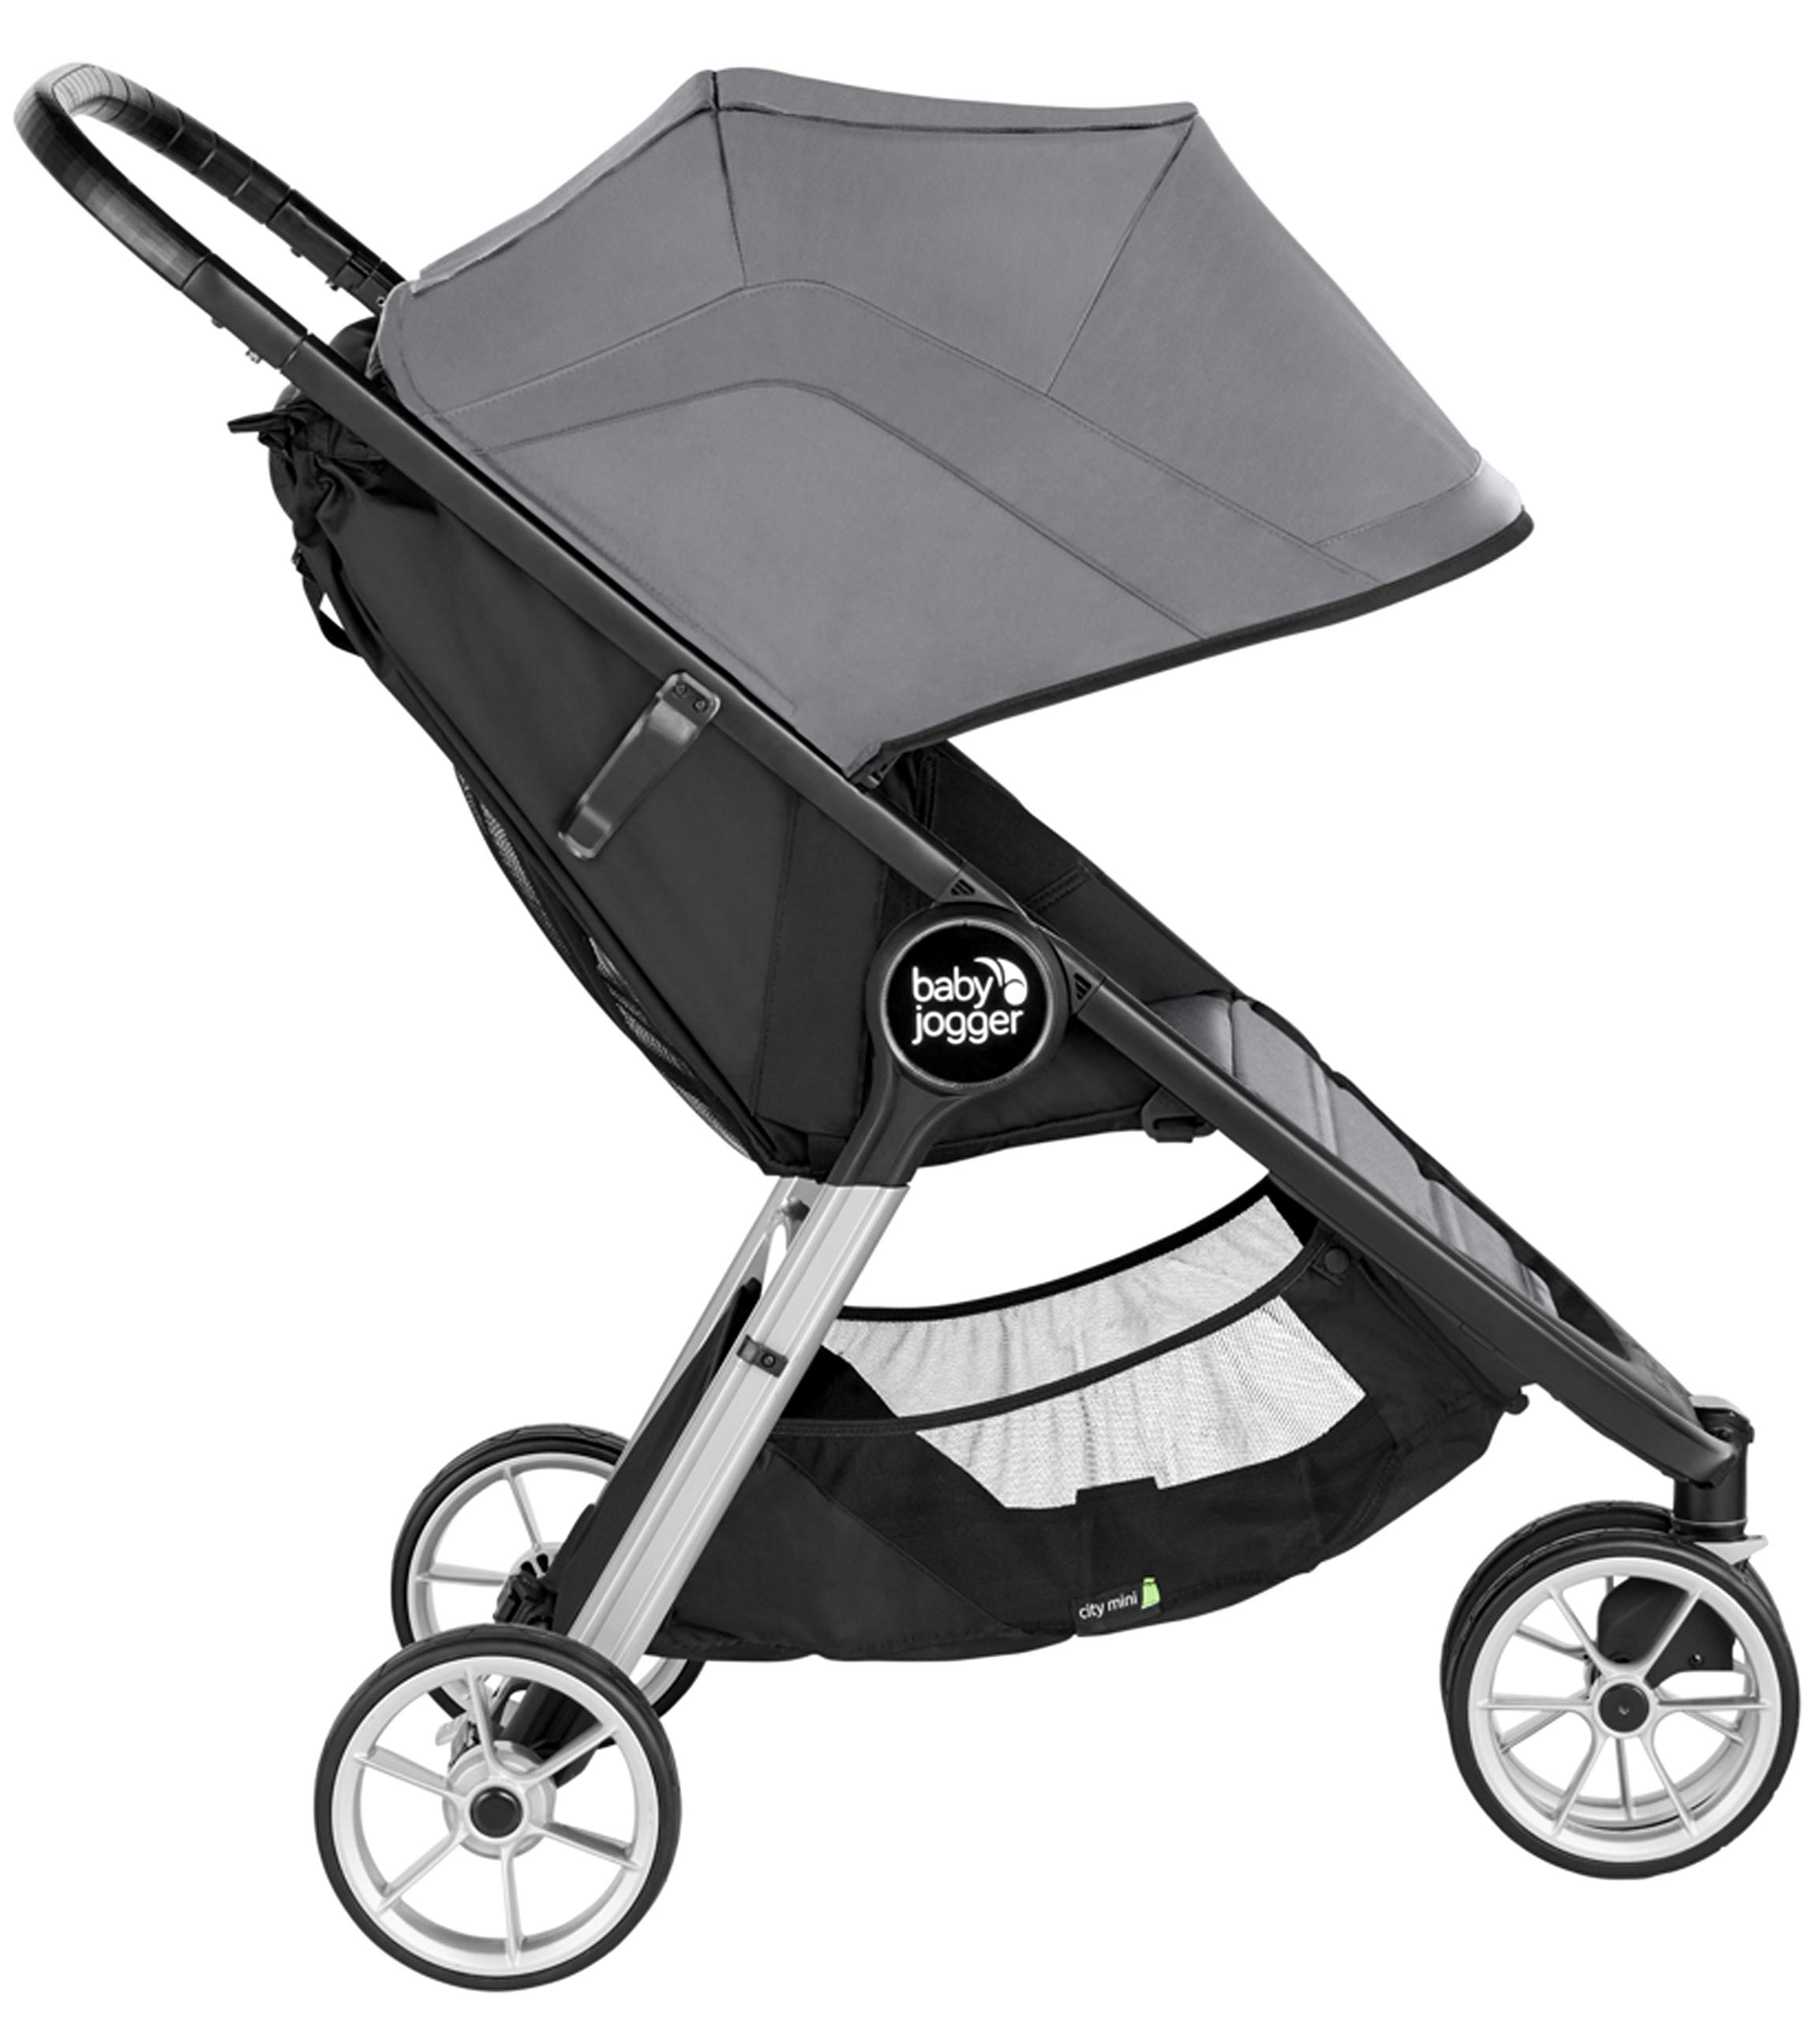 baby jogger City Mini 2 Single Stroller Slate Baby Jogger The baby jogger city mini 2 has an all new lightweight and compact design with the signature one-hand compact fold, with an auto-lock it's remarkably nimble and ready for adventure Lift a strap with one hand and the city mini 2 folds itself: simply and compactly. The auto-lock will lock the fold for transportation or storage The seat, with an adjustable calf support and near-flat recline, holds a child weighing up to 22kg and includes a 5-point stroller harness to keep them comfortable and safely secured 2